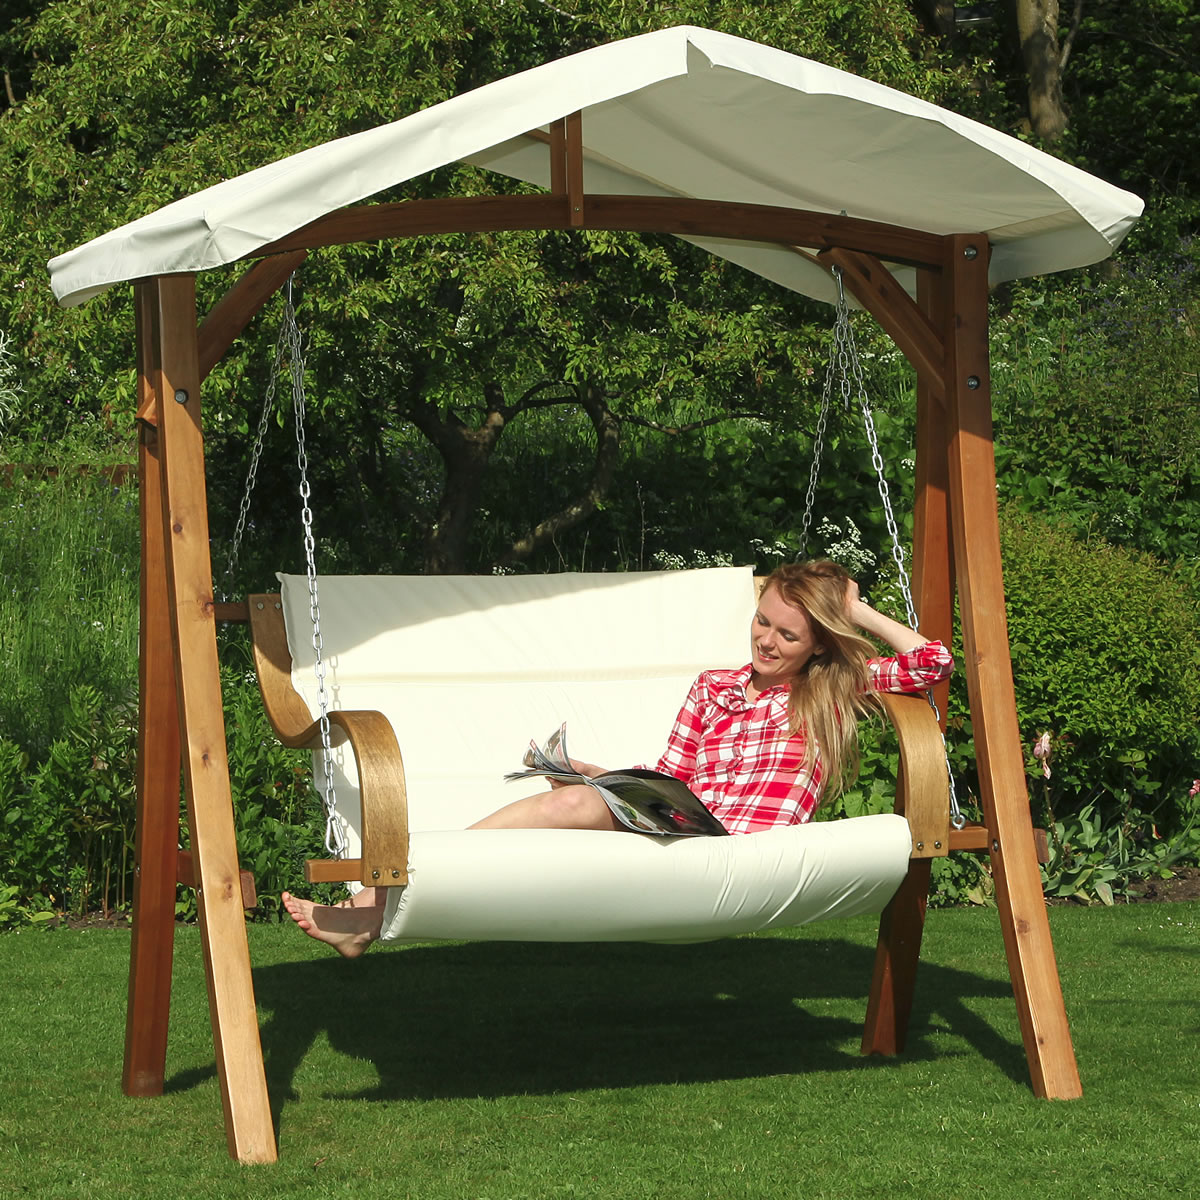 Seater Garden Swing Chair With Canopy Hl 6302 3